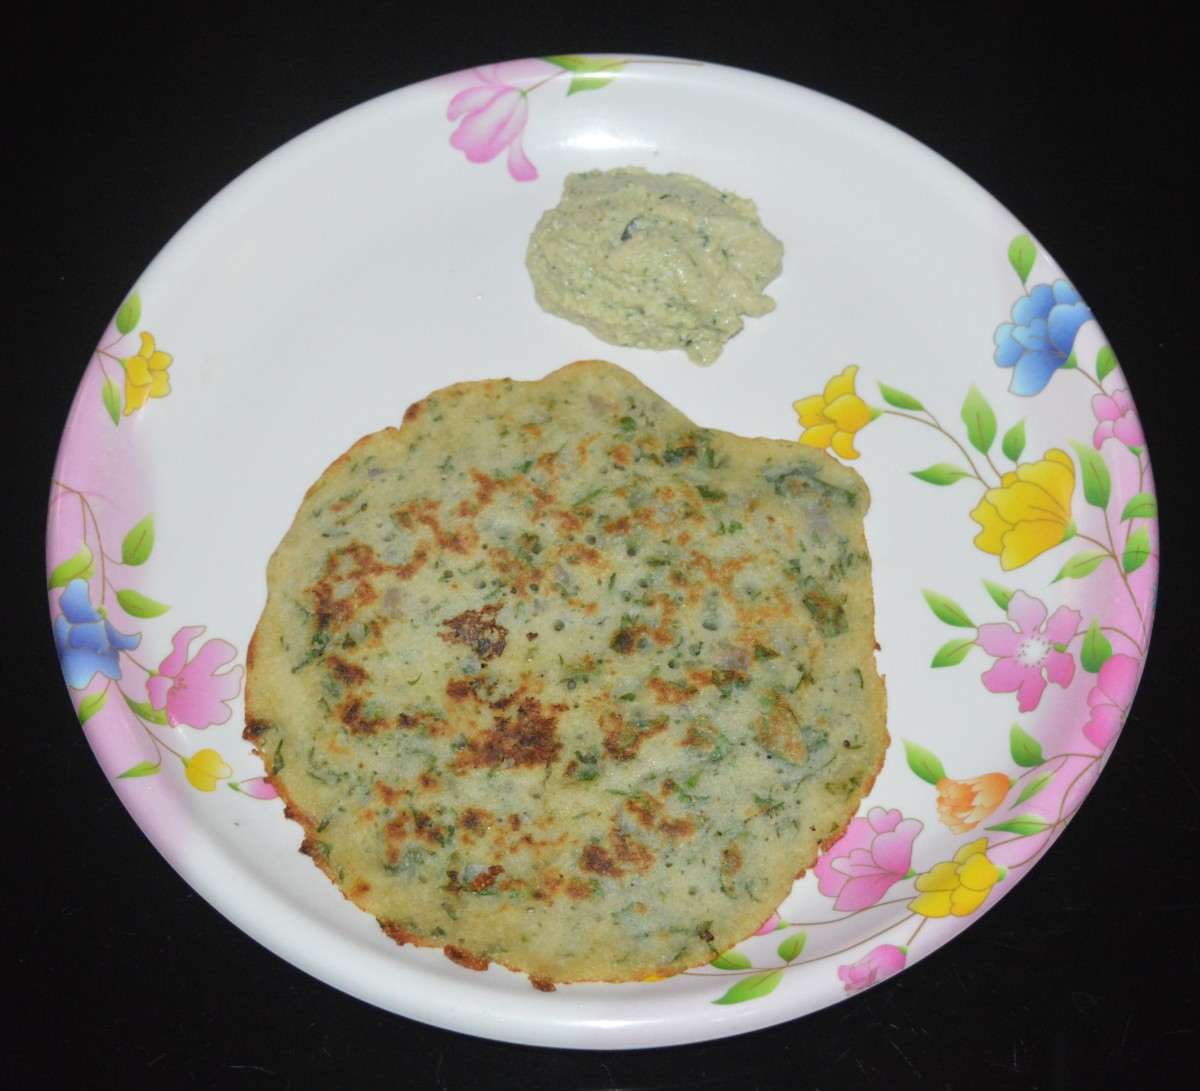 When the edges become golden brown, flip it. Add some oil or ghee to the top. Allow the bottom side also cook nicely and get golden brown spots. Remove and place it on a plate. Serve hot with coconut chutney. Enjoy!